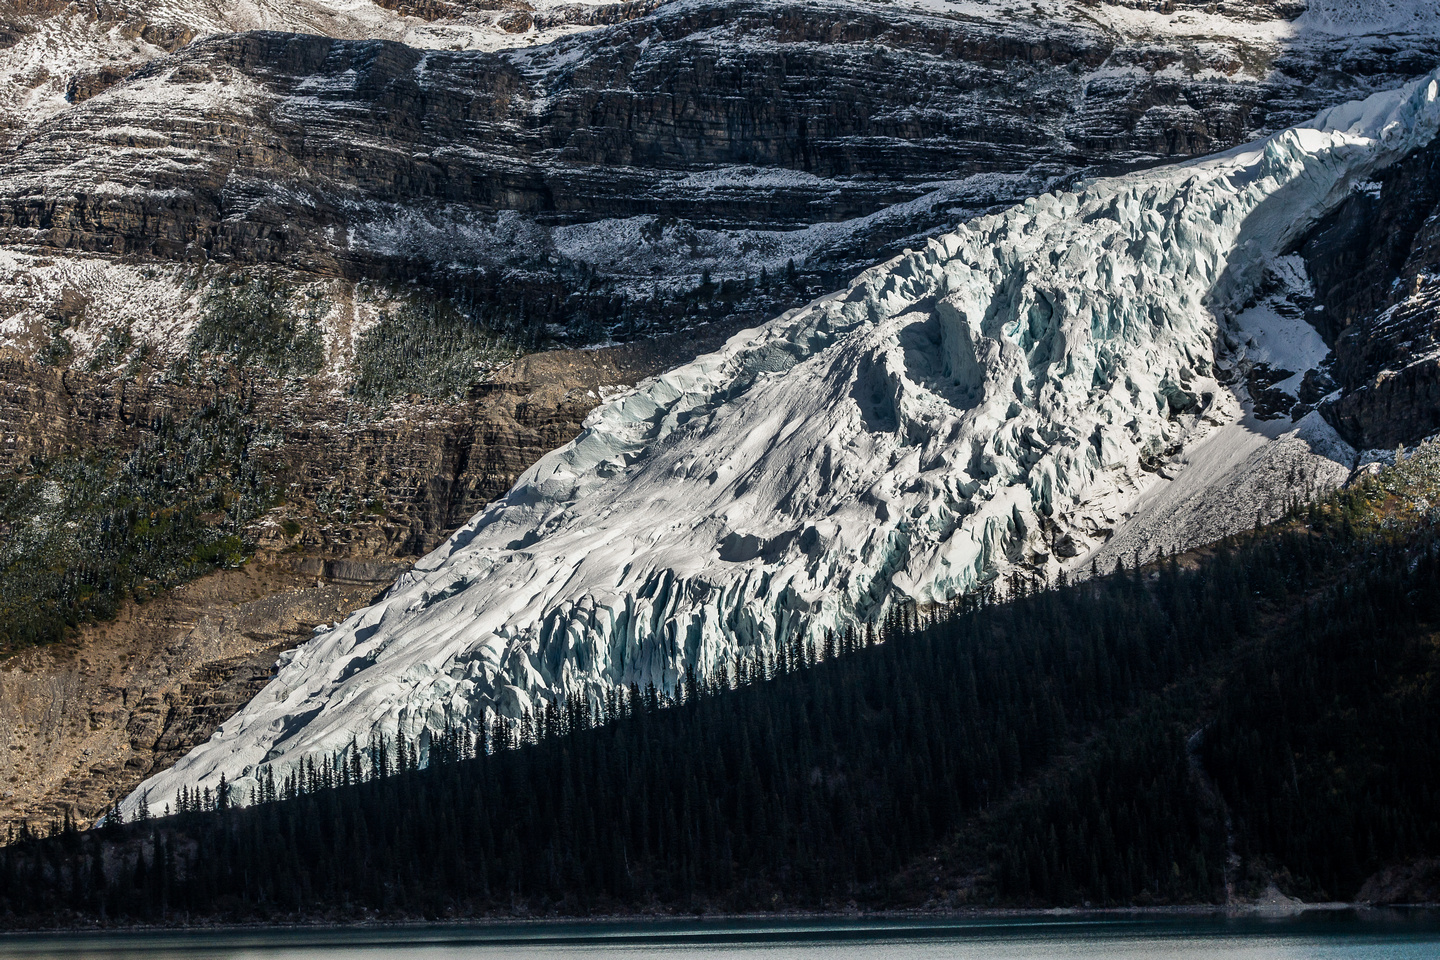 I get my first good view of the Berg Glacier plunging into Berg Lake.